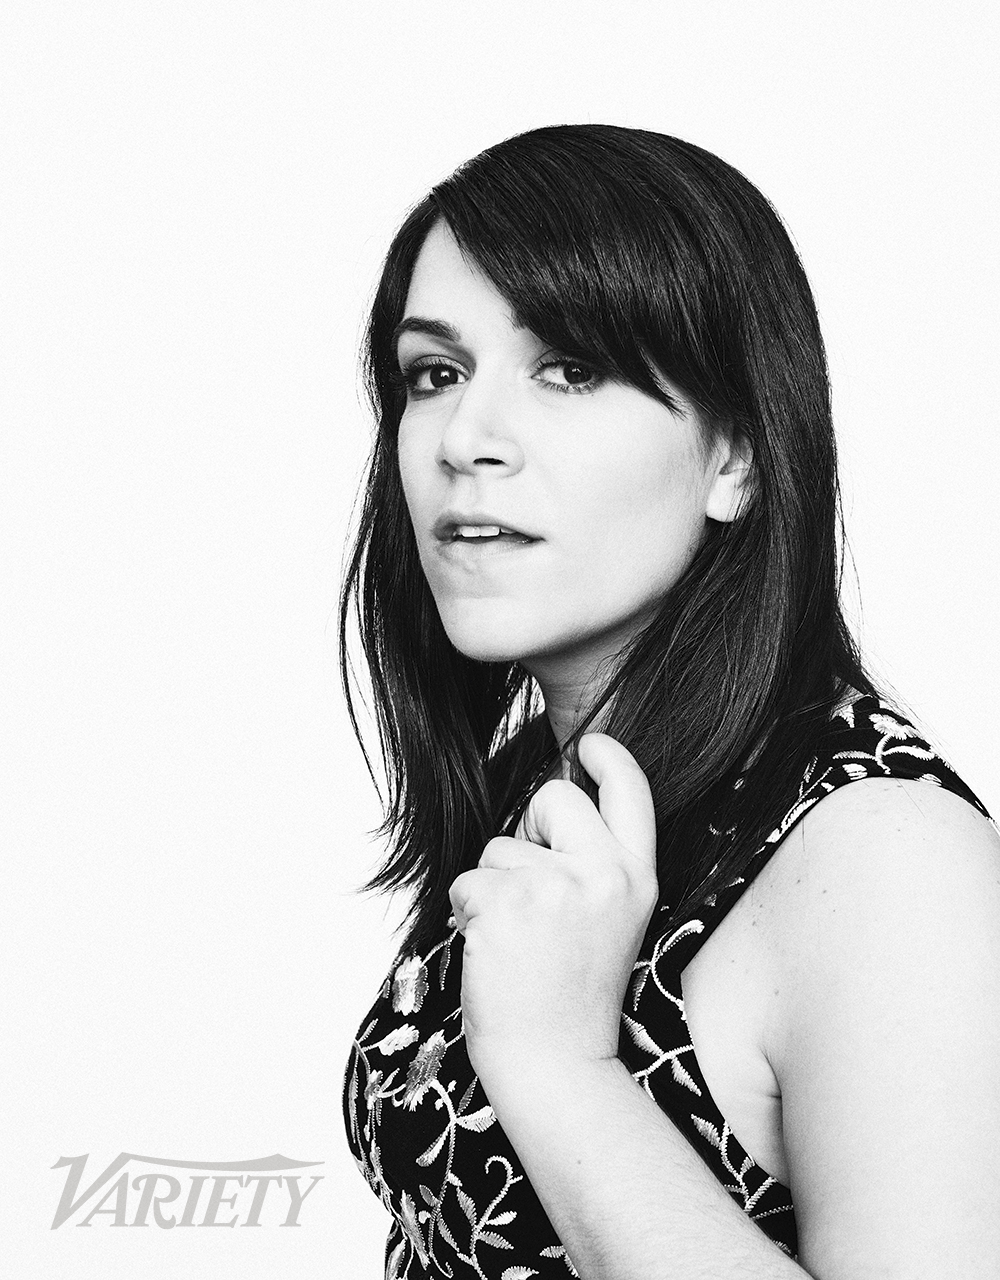 Abbi Jacobson - Co-Creator of Broad City